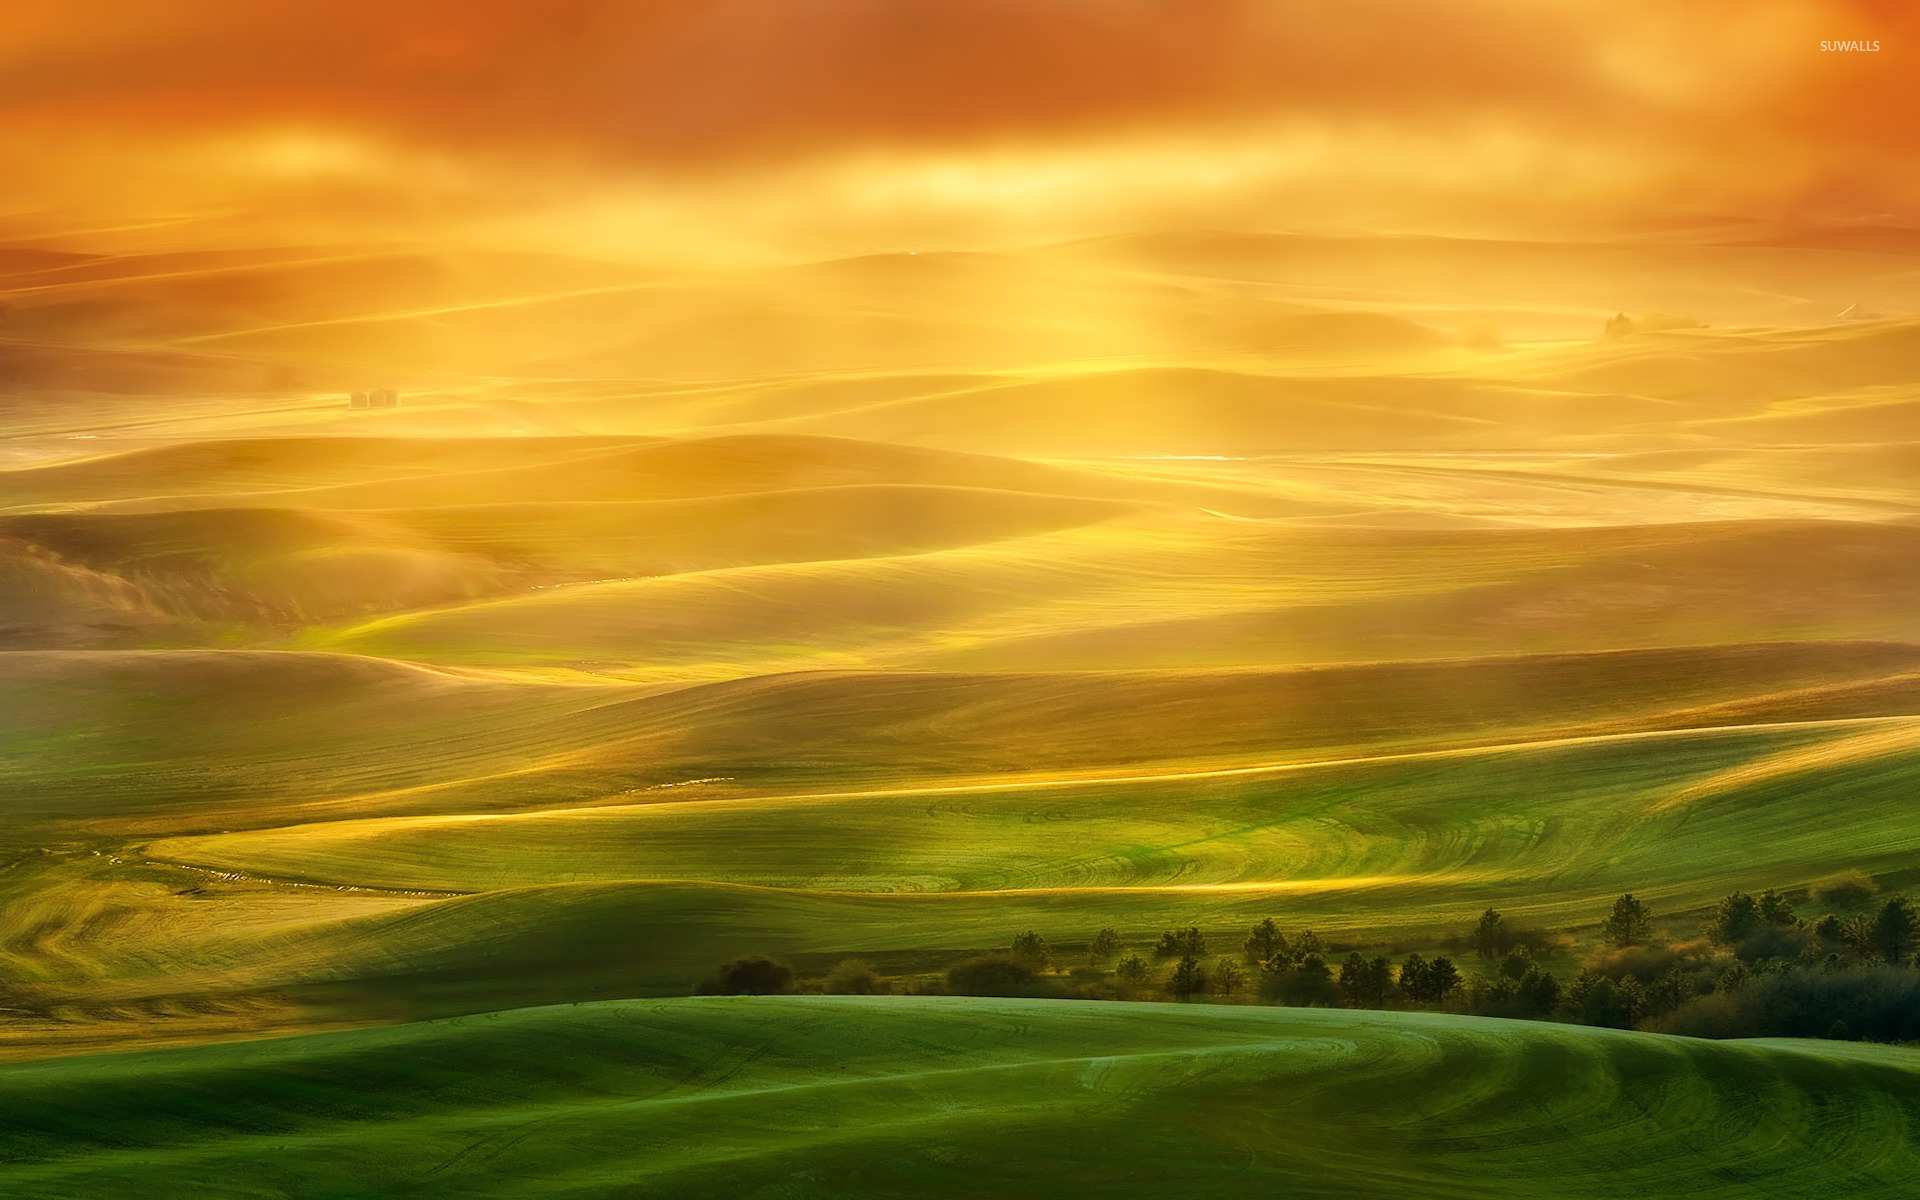 Fall Wallpaper For Desktop Free Colorful Fields Wallpaper Nature Wallpapers 23207